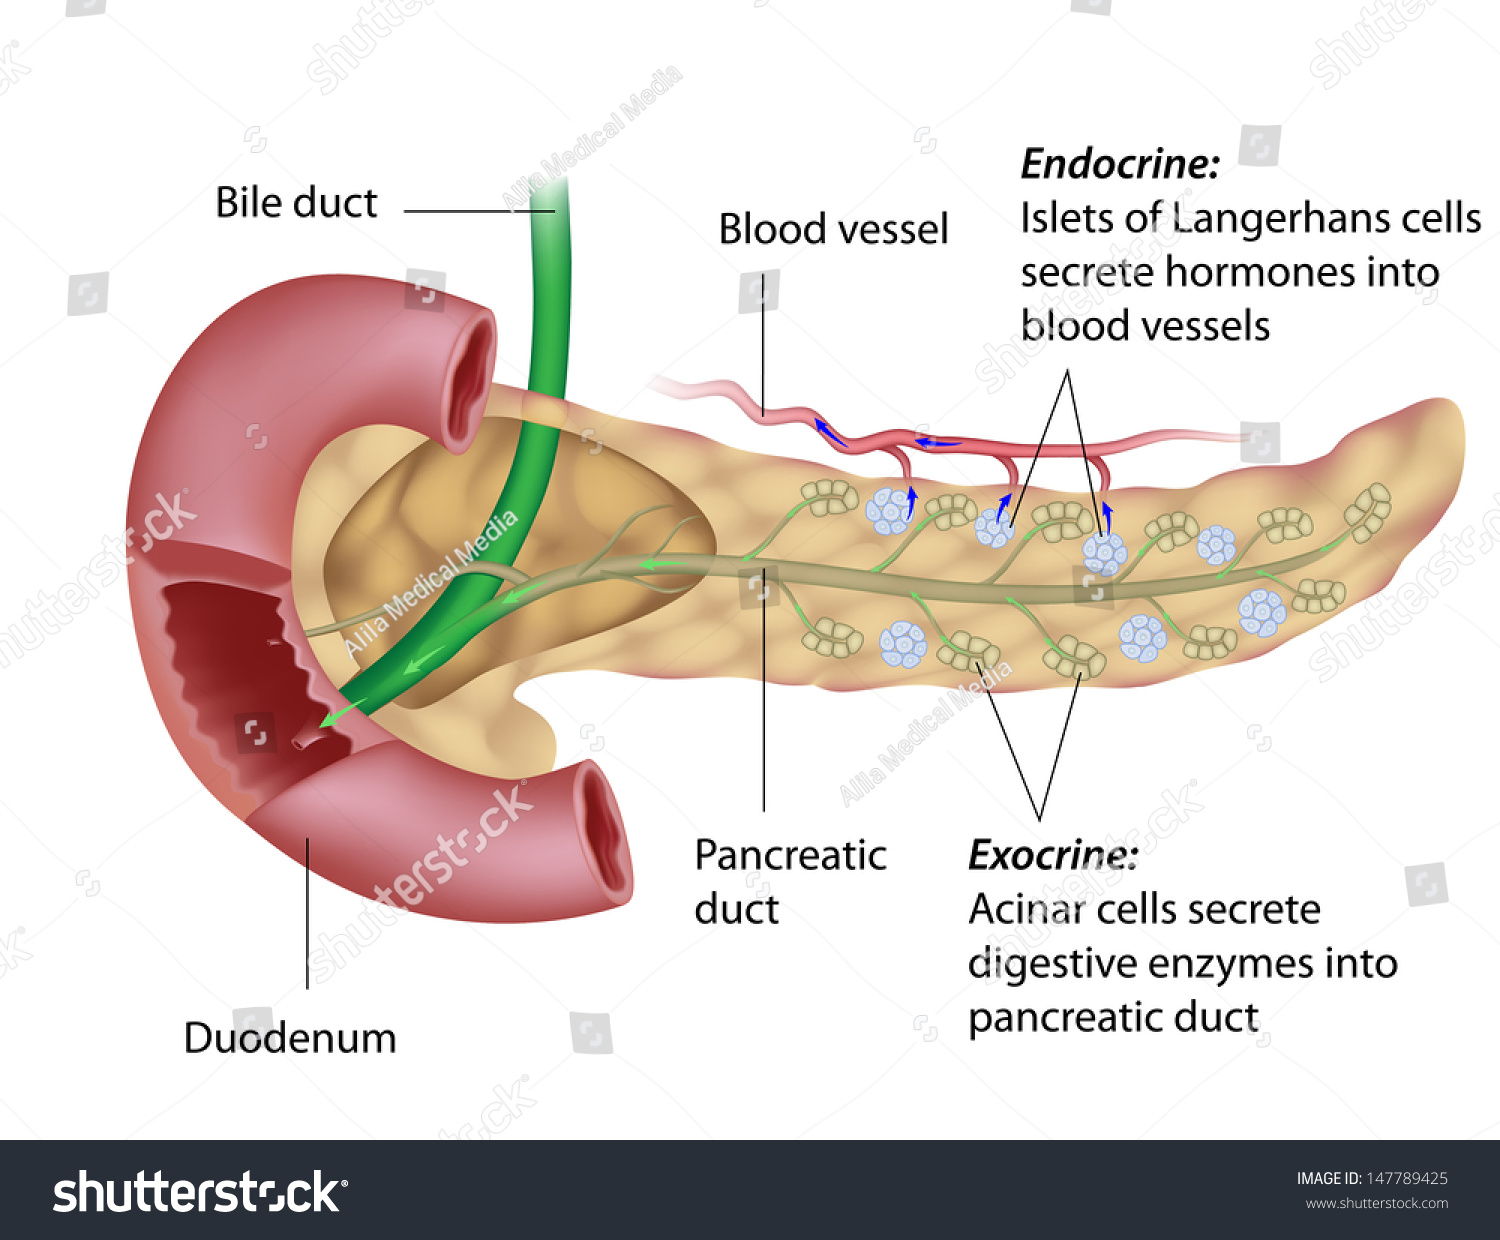 pancreas anatomy diagram wiring for western snow plow exocrine endocrine stock illustration 147789425